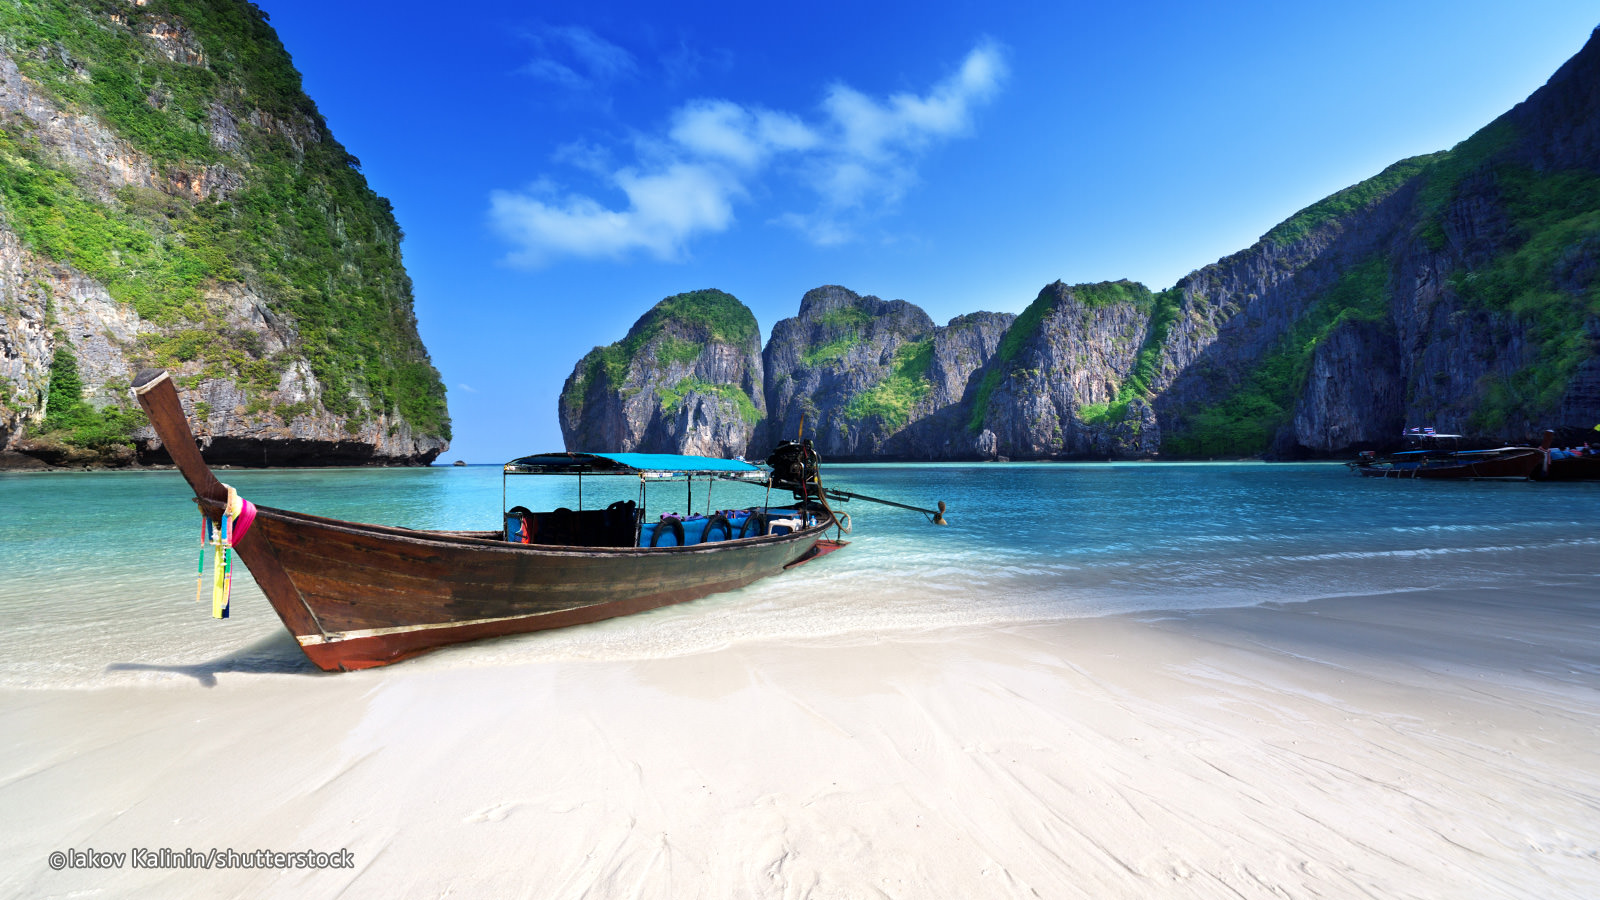 Phuket - Pristine beaches.  Amazing sunsets. Crystal clear water. Dramatic rain forests.  Picturesque mountains.  Need I say more?